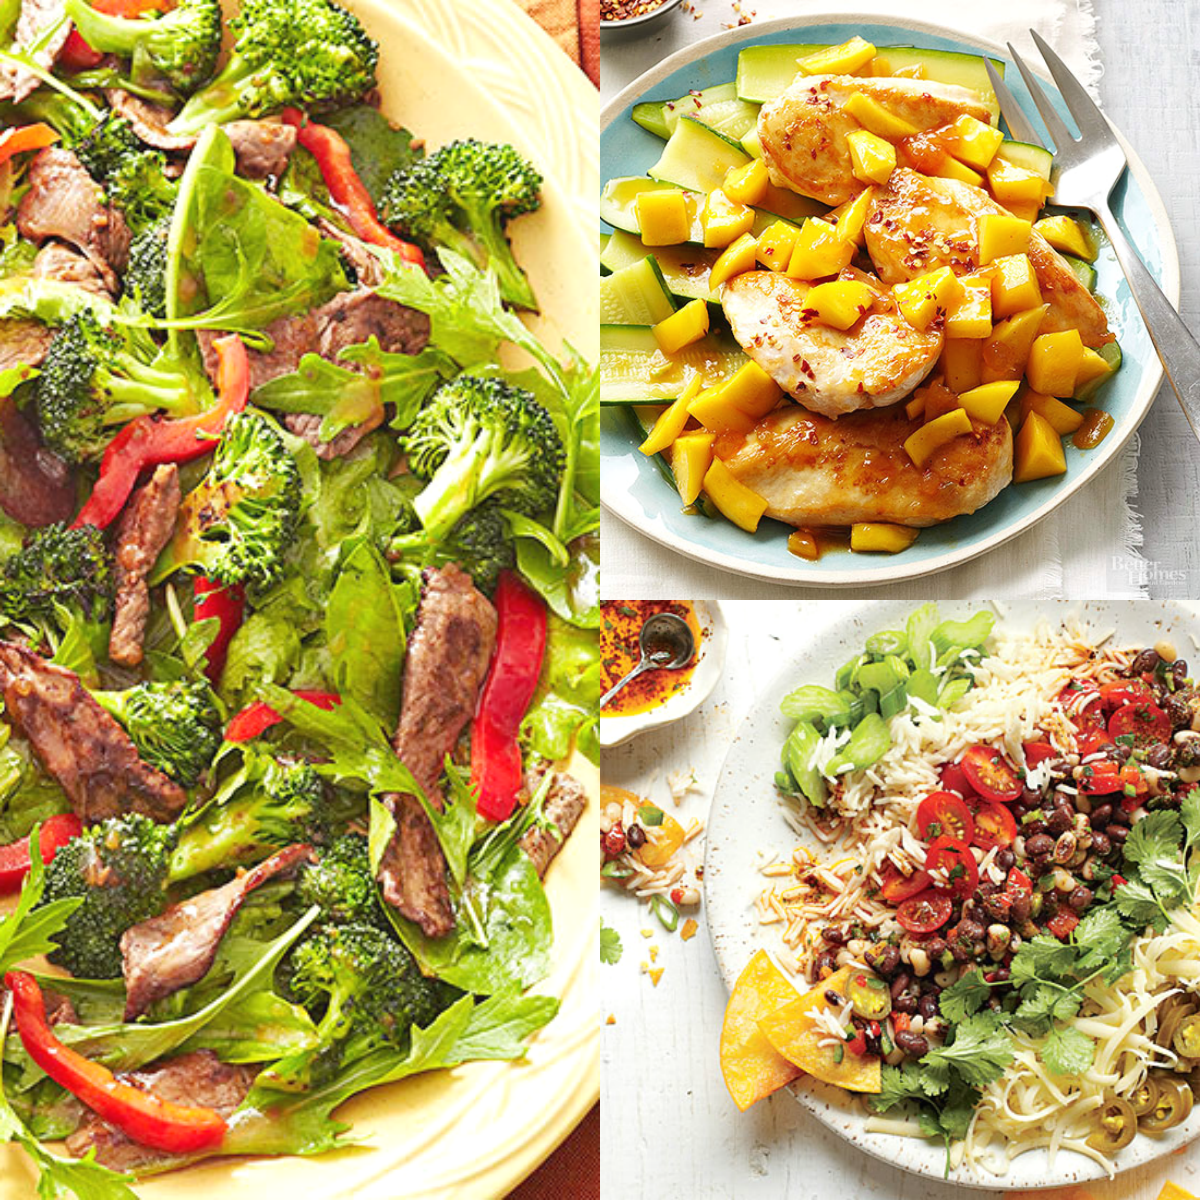 25 Spring Dinners for Busy Families - At Home With Zan